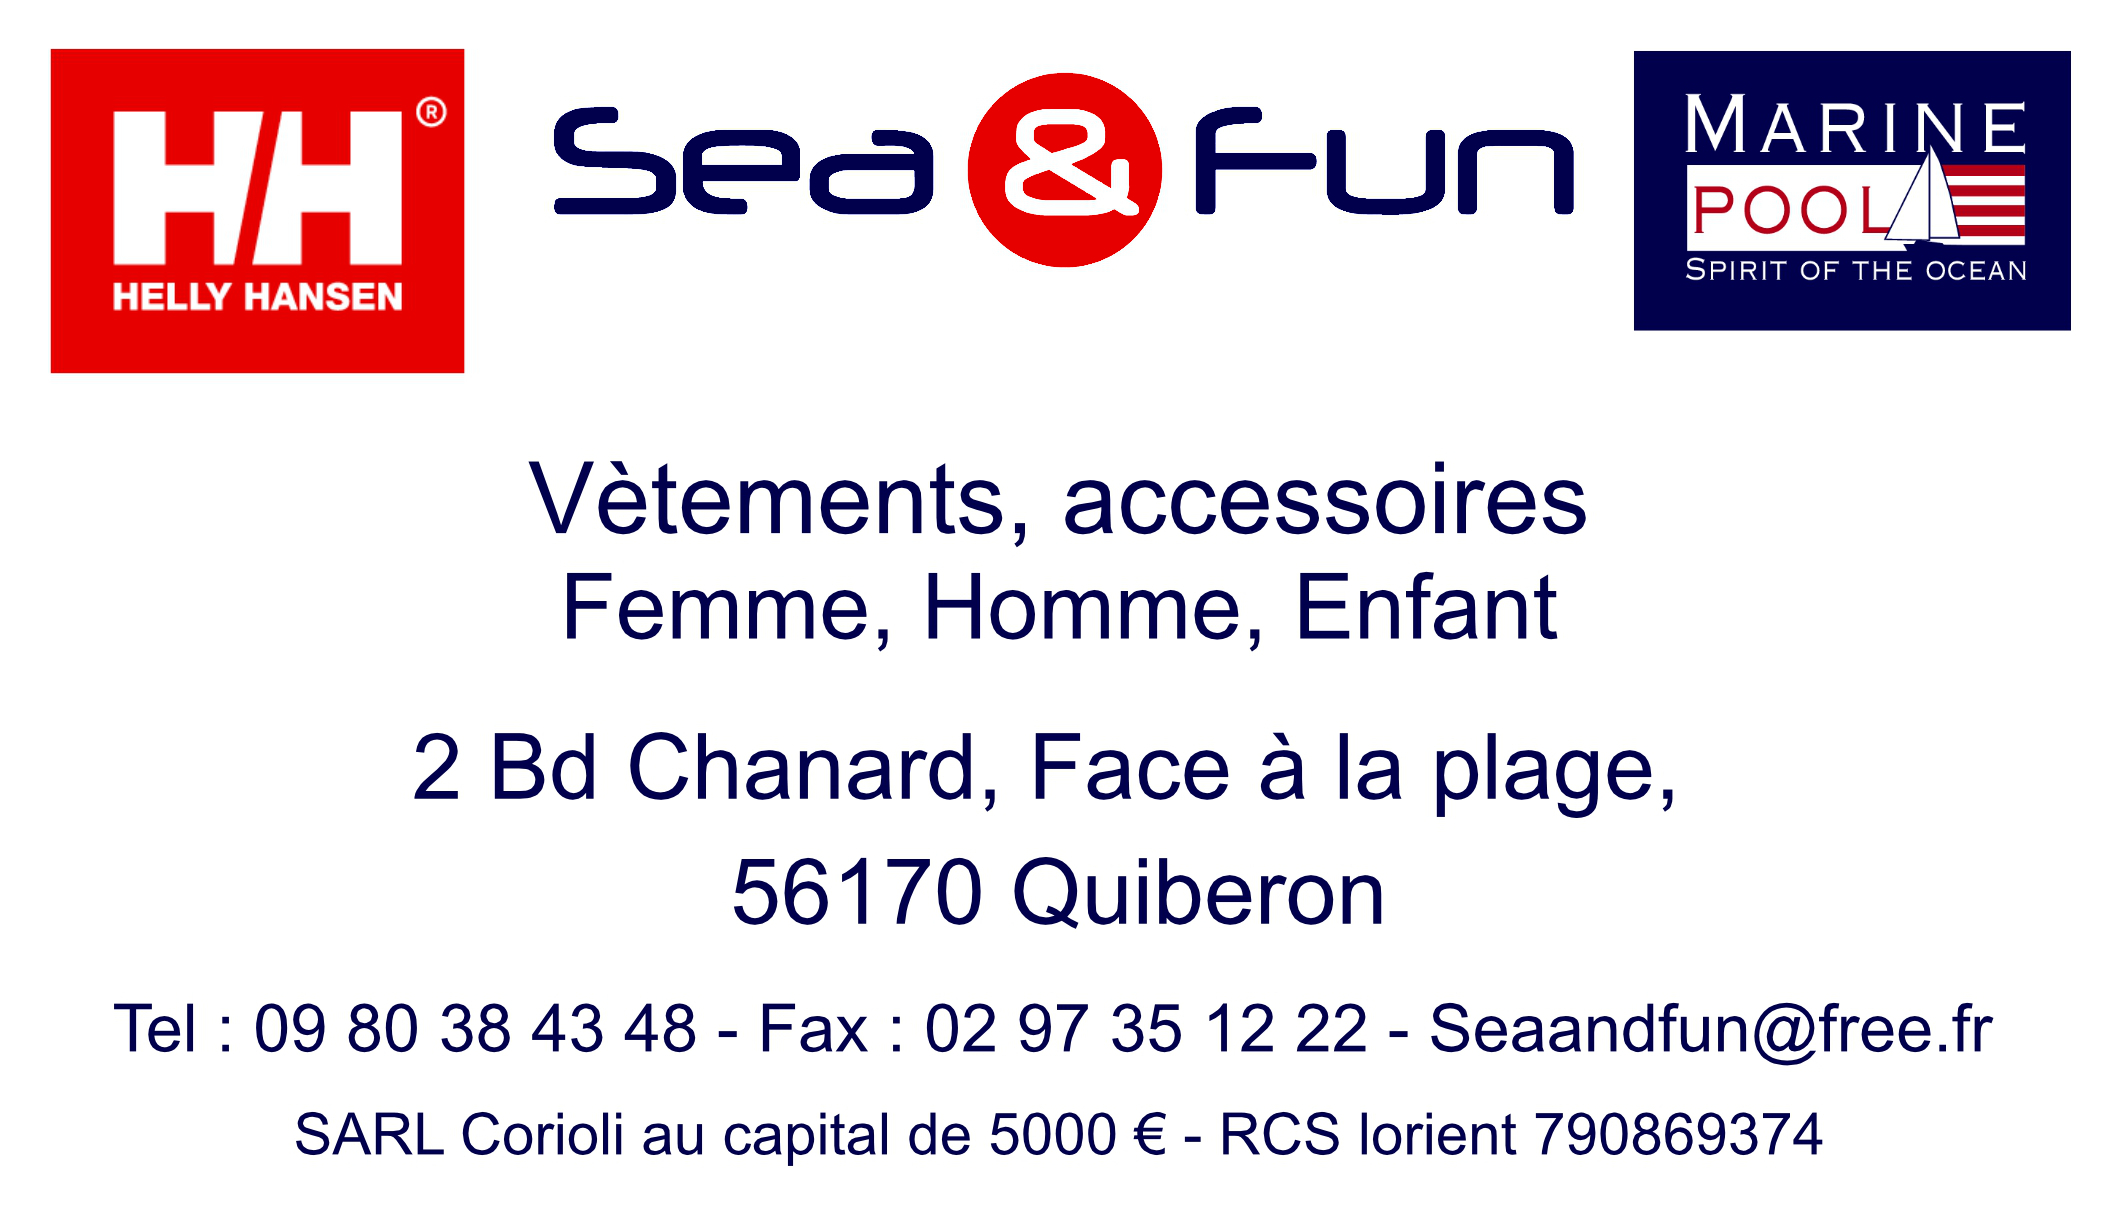 Sea And Fun, 2 Bd Chanard, 56170 Quiberon - Tel : 09 80 38 43 48